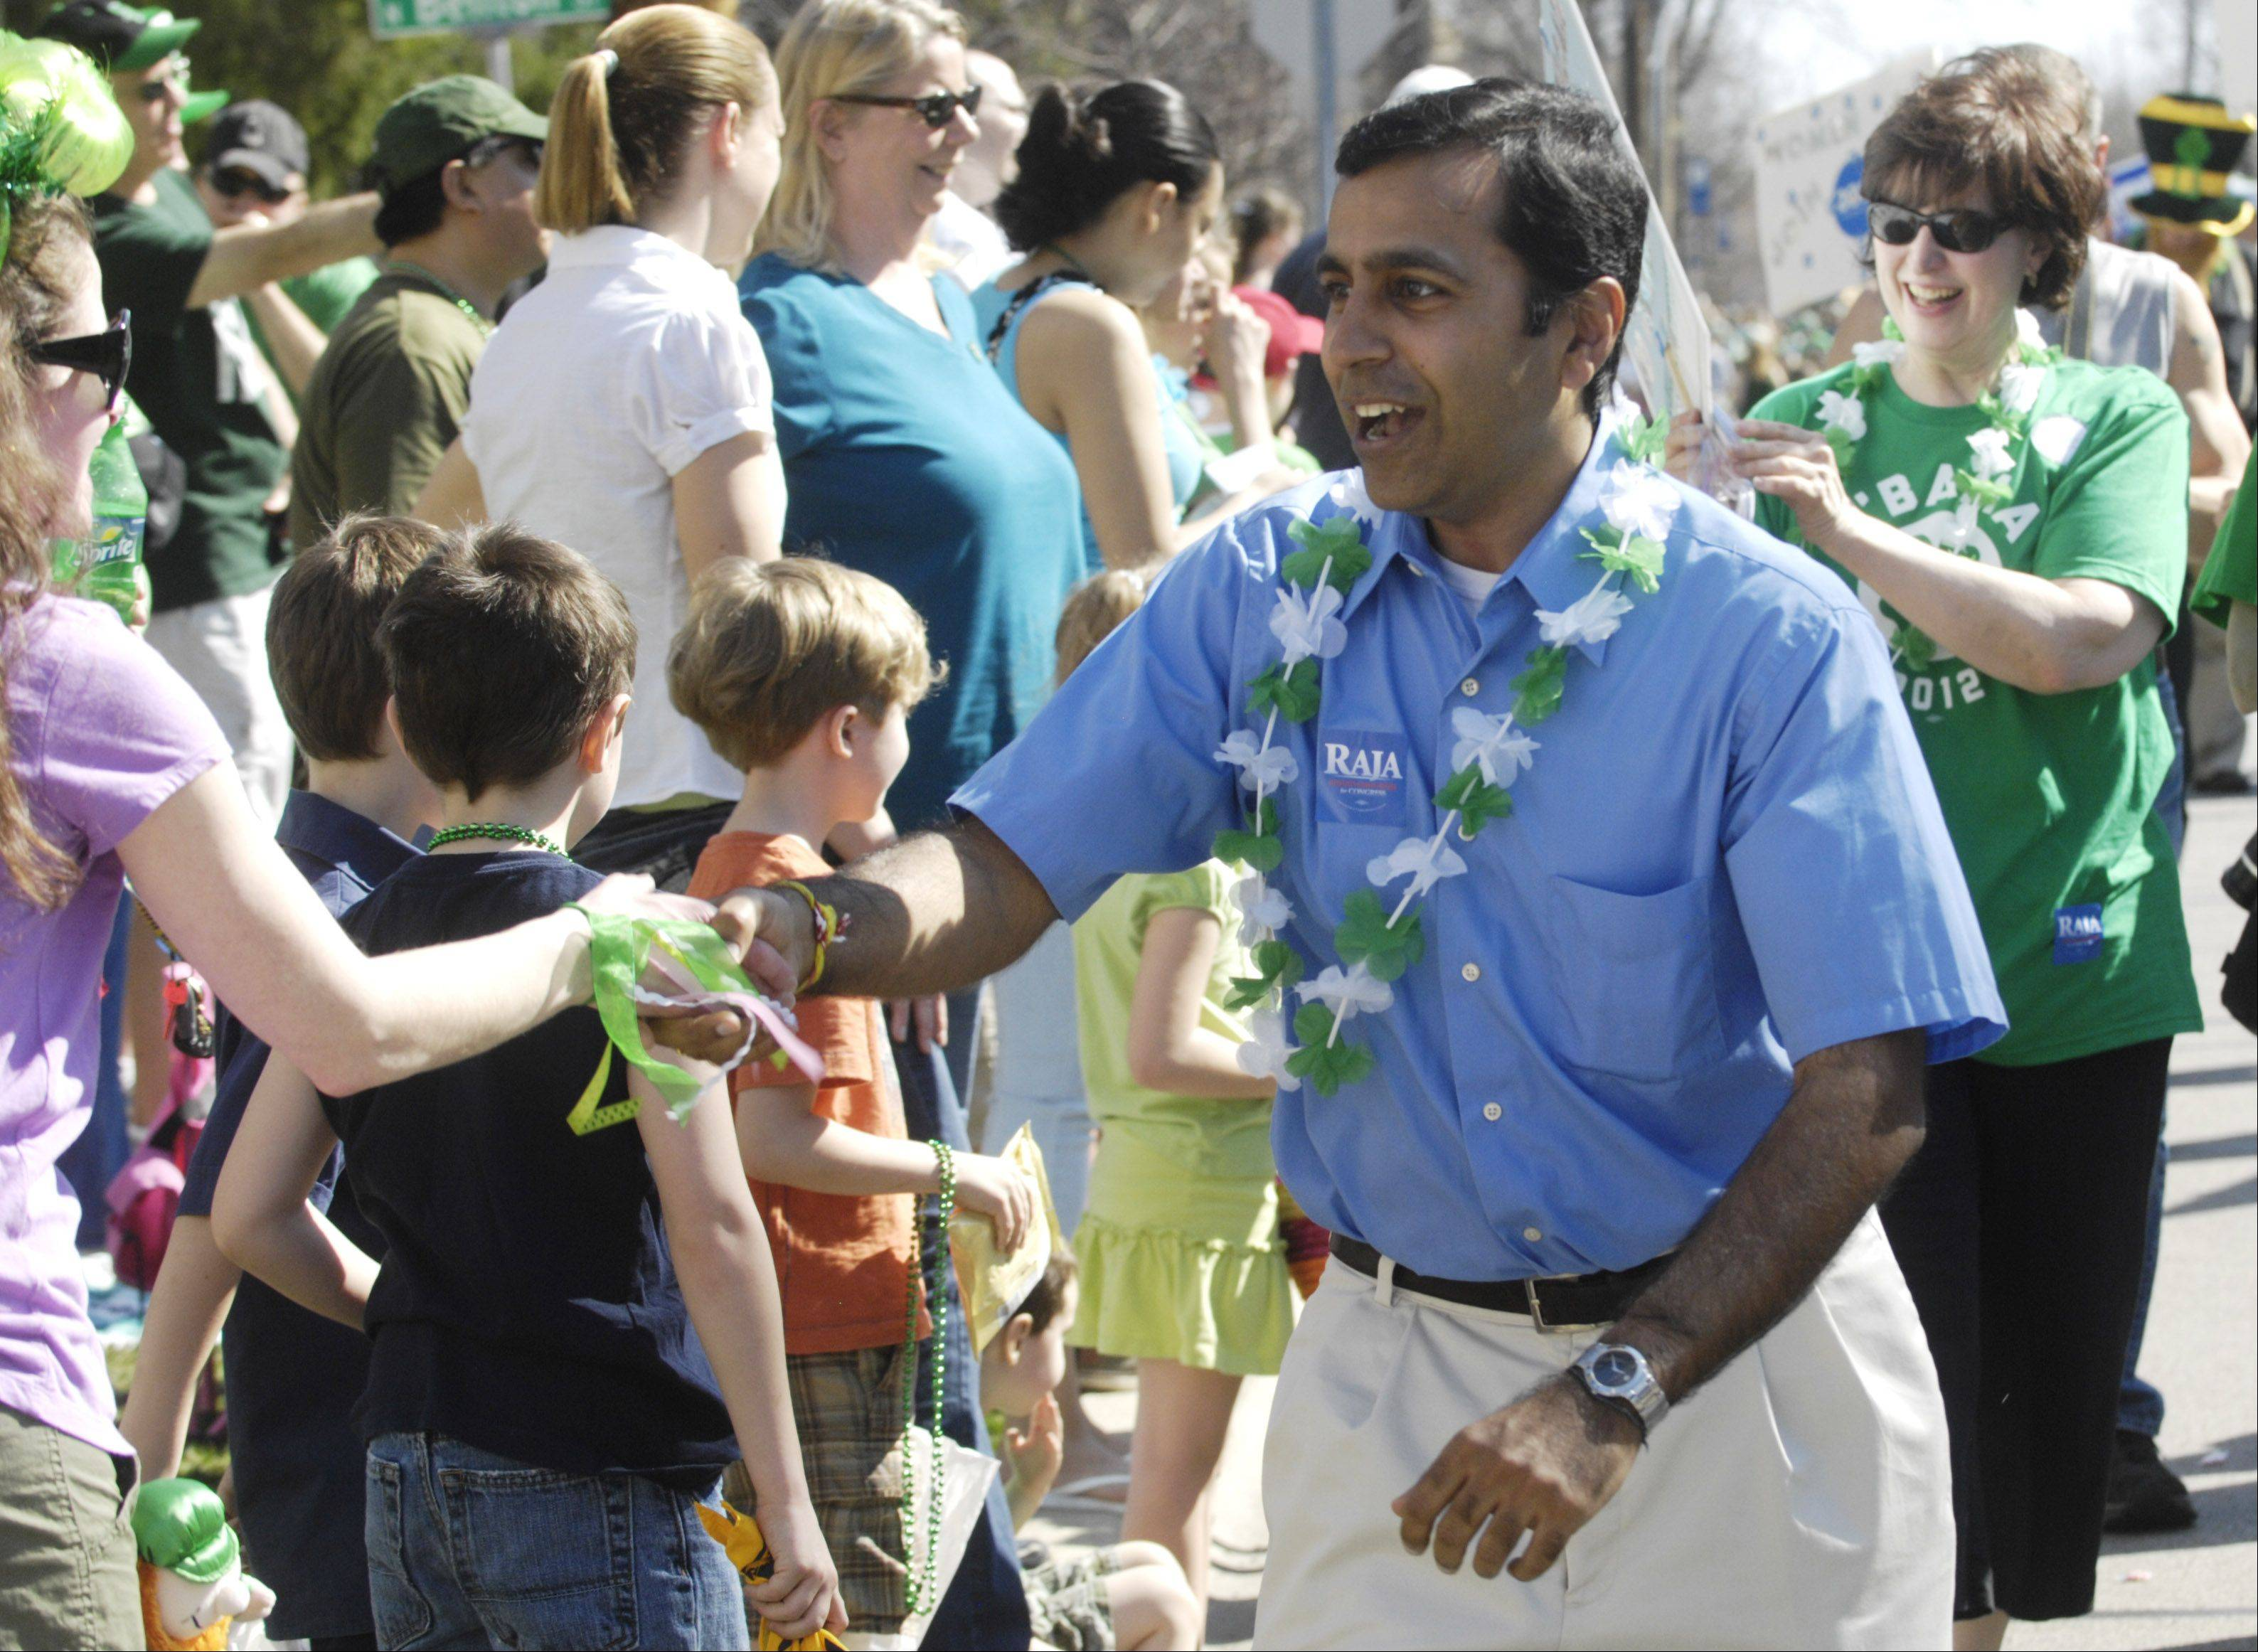 Decked out for the day in a shamrock lei, Raja Krishnamoorthi, Democratic candidate for the 8th Congressional District, greets crowds lining Wood Street on Saturday during the Palatine St. Patrick's Day Parade.